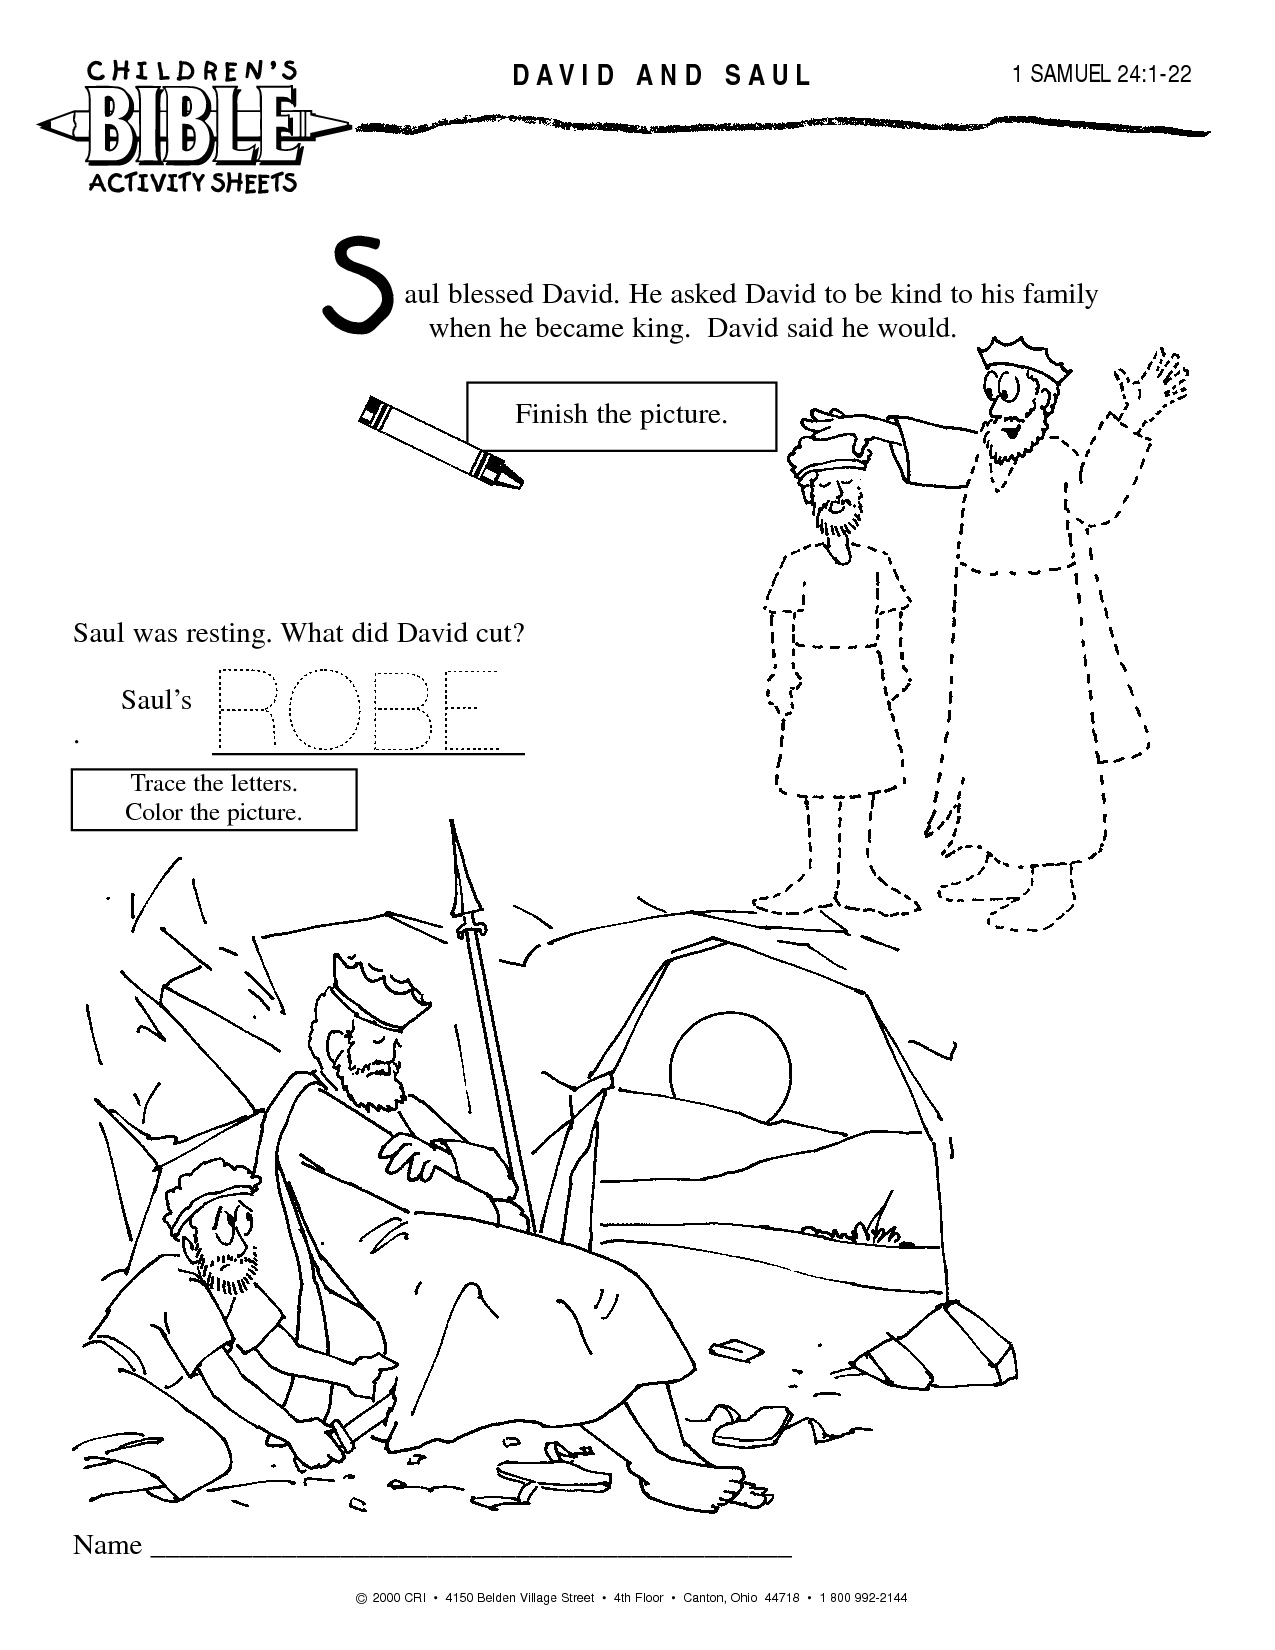 8 Pics Of 1 Samuel 24 Coloring Pages - King David And Saul ...